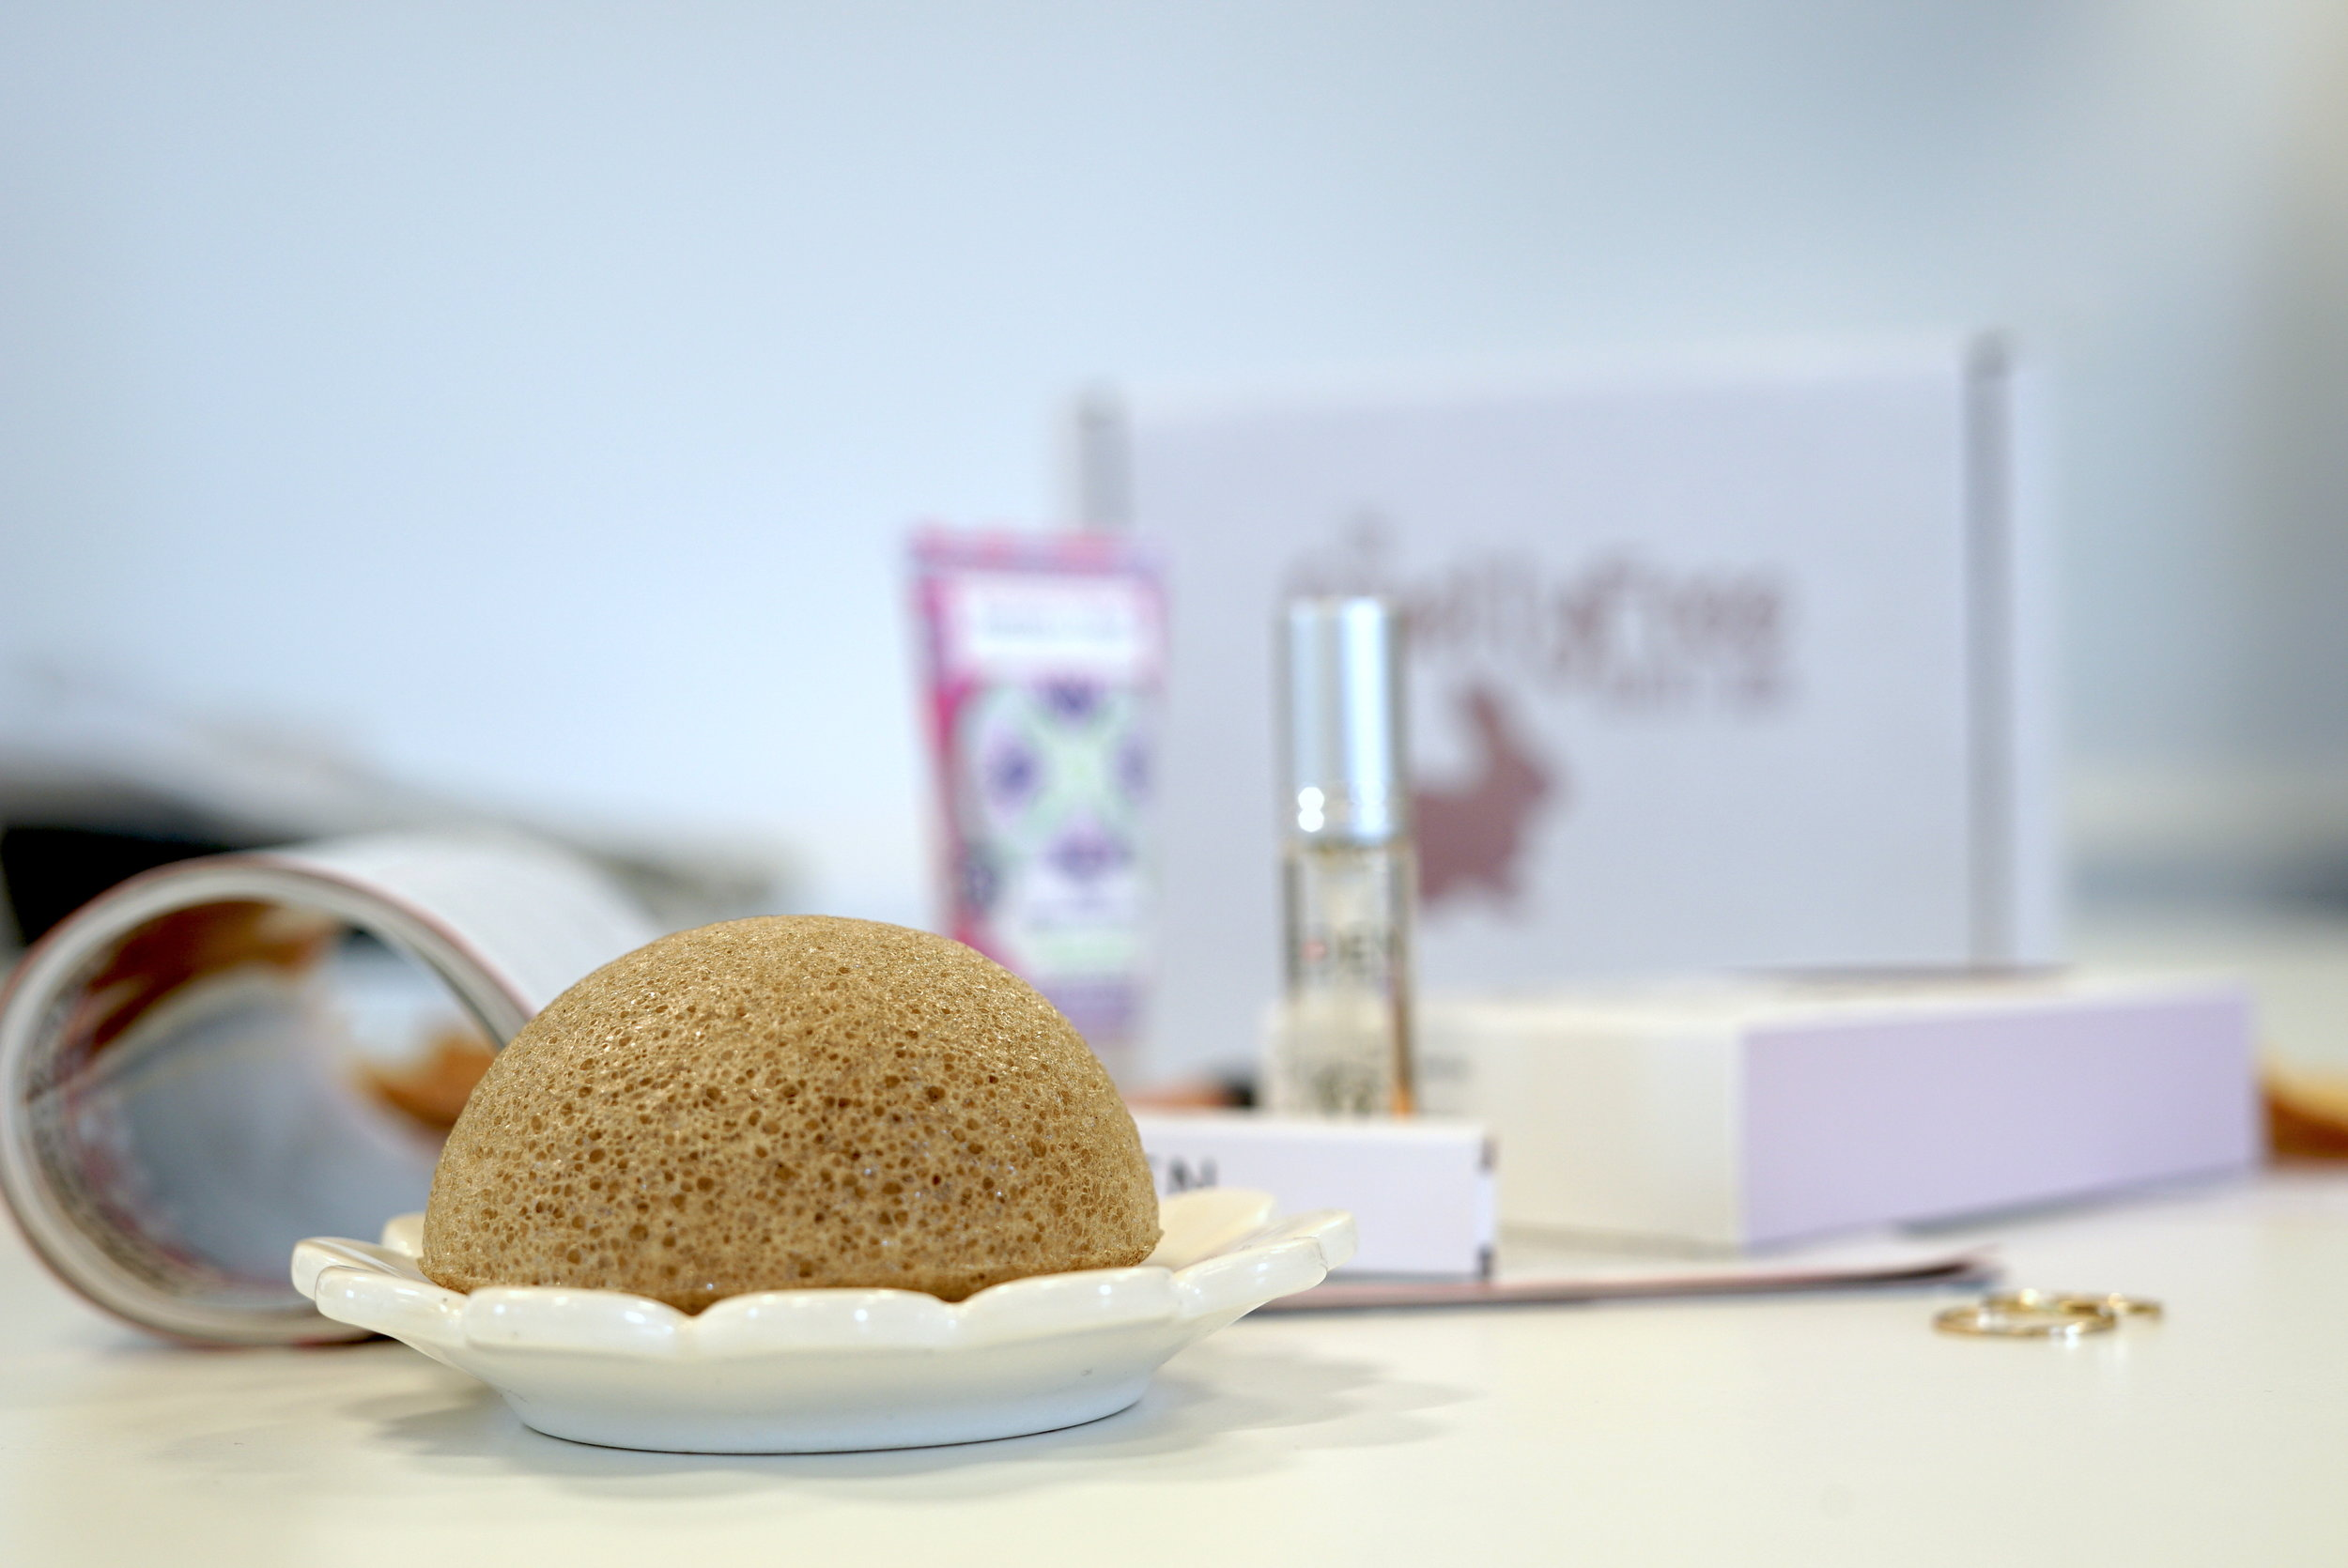 The Konjac Sponge - I recently posted about my successful experience with this little gem. It's a small but mighty, 100% natural cleansing tool which effectively replenishes and accelerates a healthy skin cycle. It has some truly incredible results and my skin has never looked better!